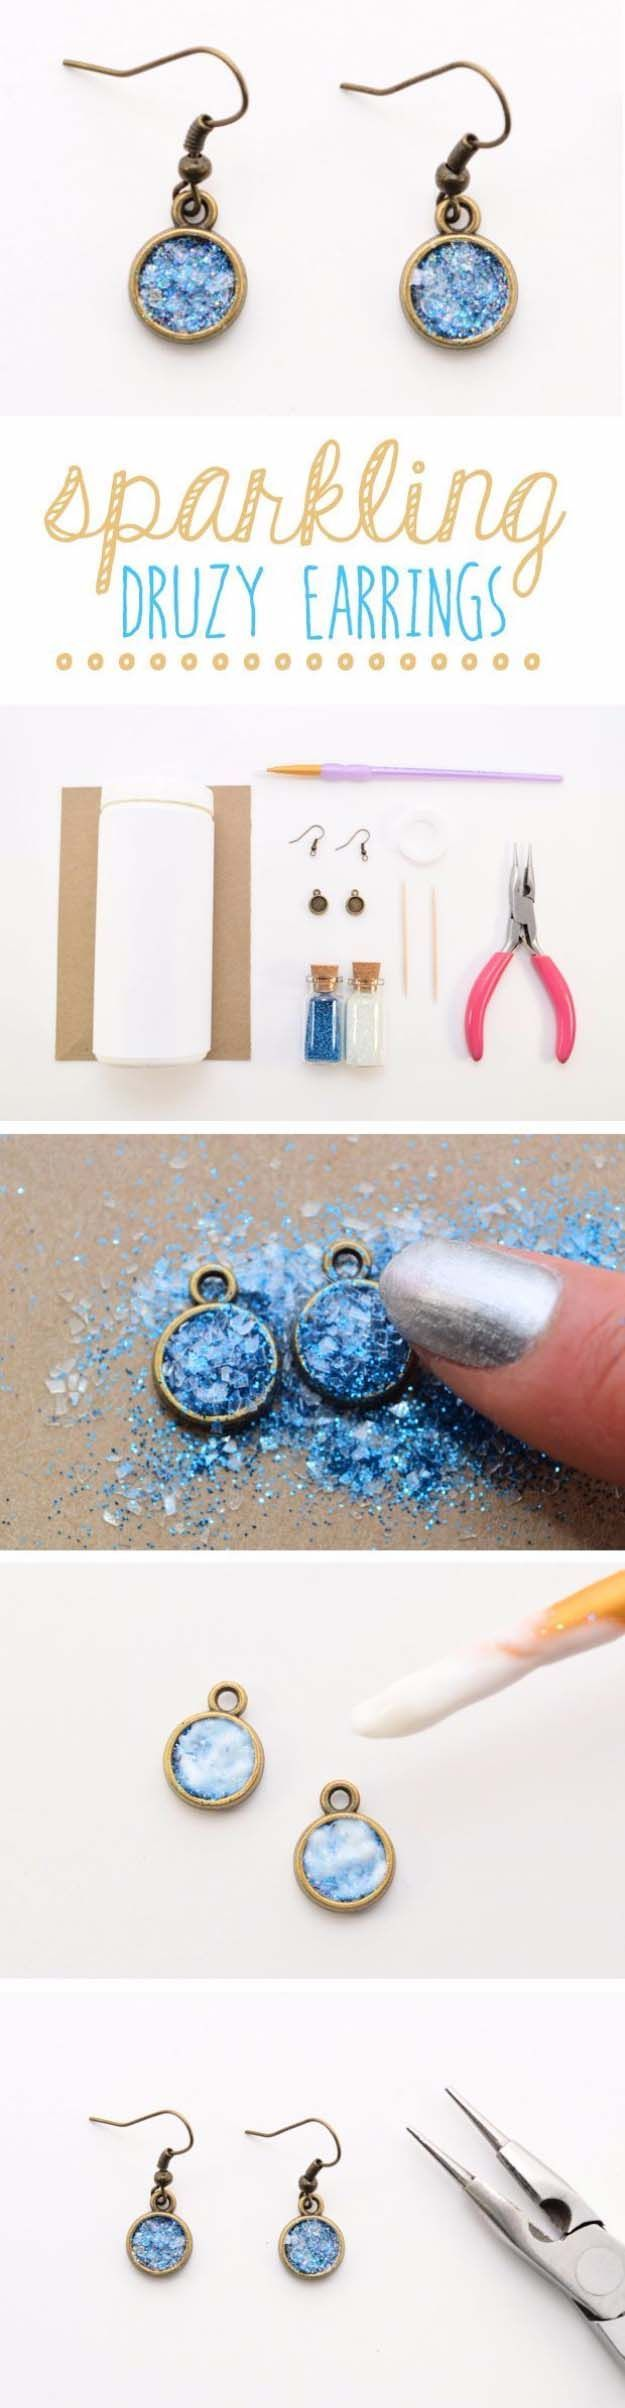 DIY Gifts for Your Girlfriend and Cool Homemade Gift Ideas for Her | Easy Creative DIY Projects and Tutorials for Christmas, Birthday and Anniversary Gifts for Mom, Sister, Aunt, Teacher or Friends | Sparklng Glitter Druzy Earrings for Cool Homemade DIY Fashion | Cool Crafts and DIY Projects by DIY JOY http://diyjoy.com/diy-gifts-for-her-girlfriend-mom